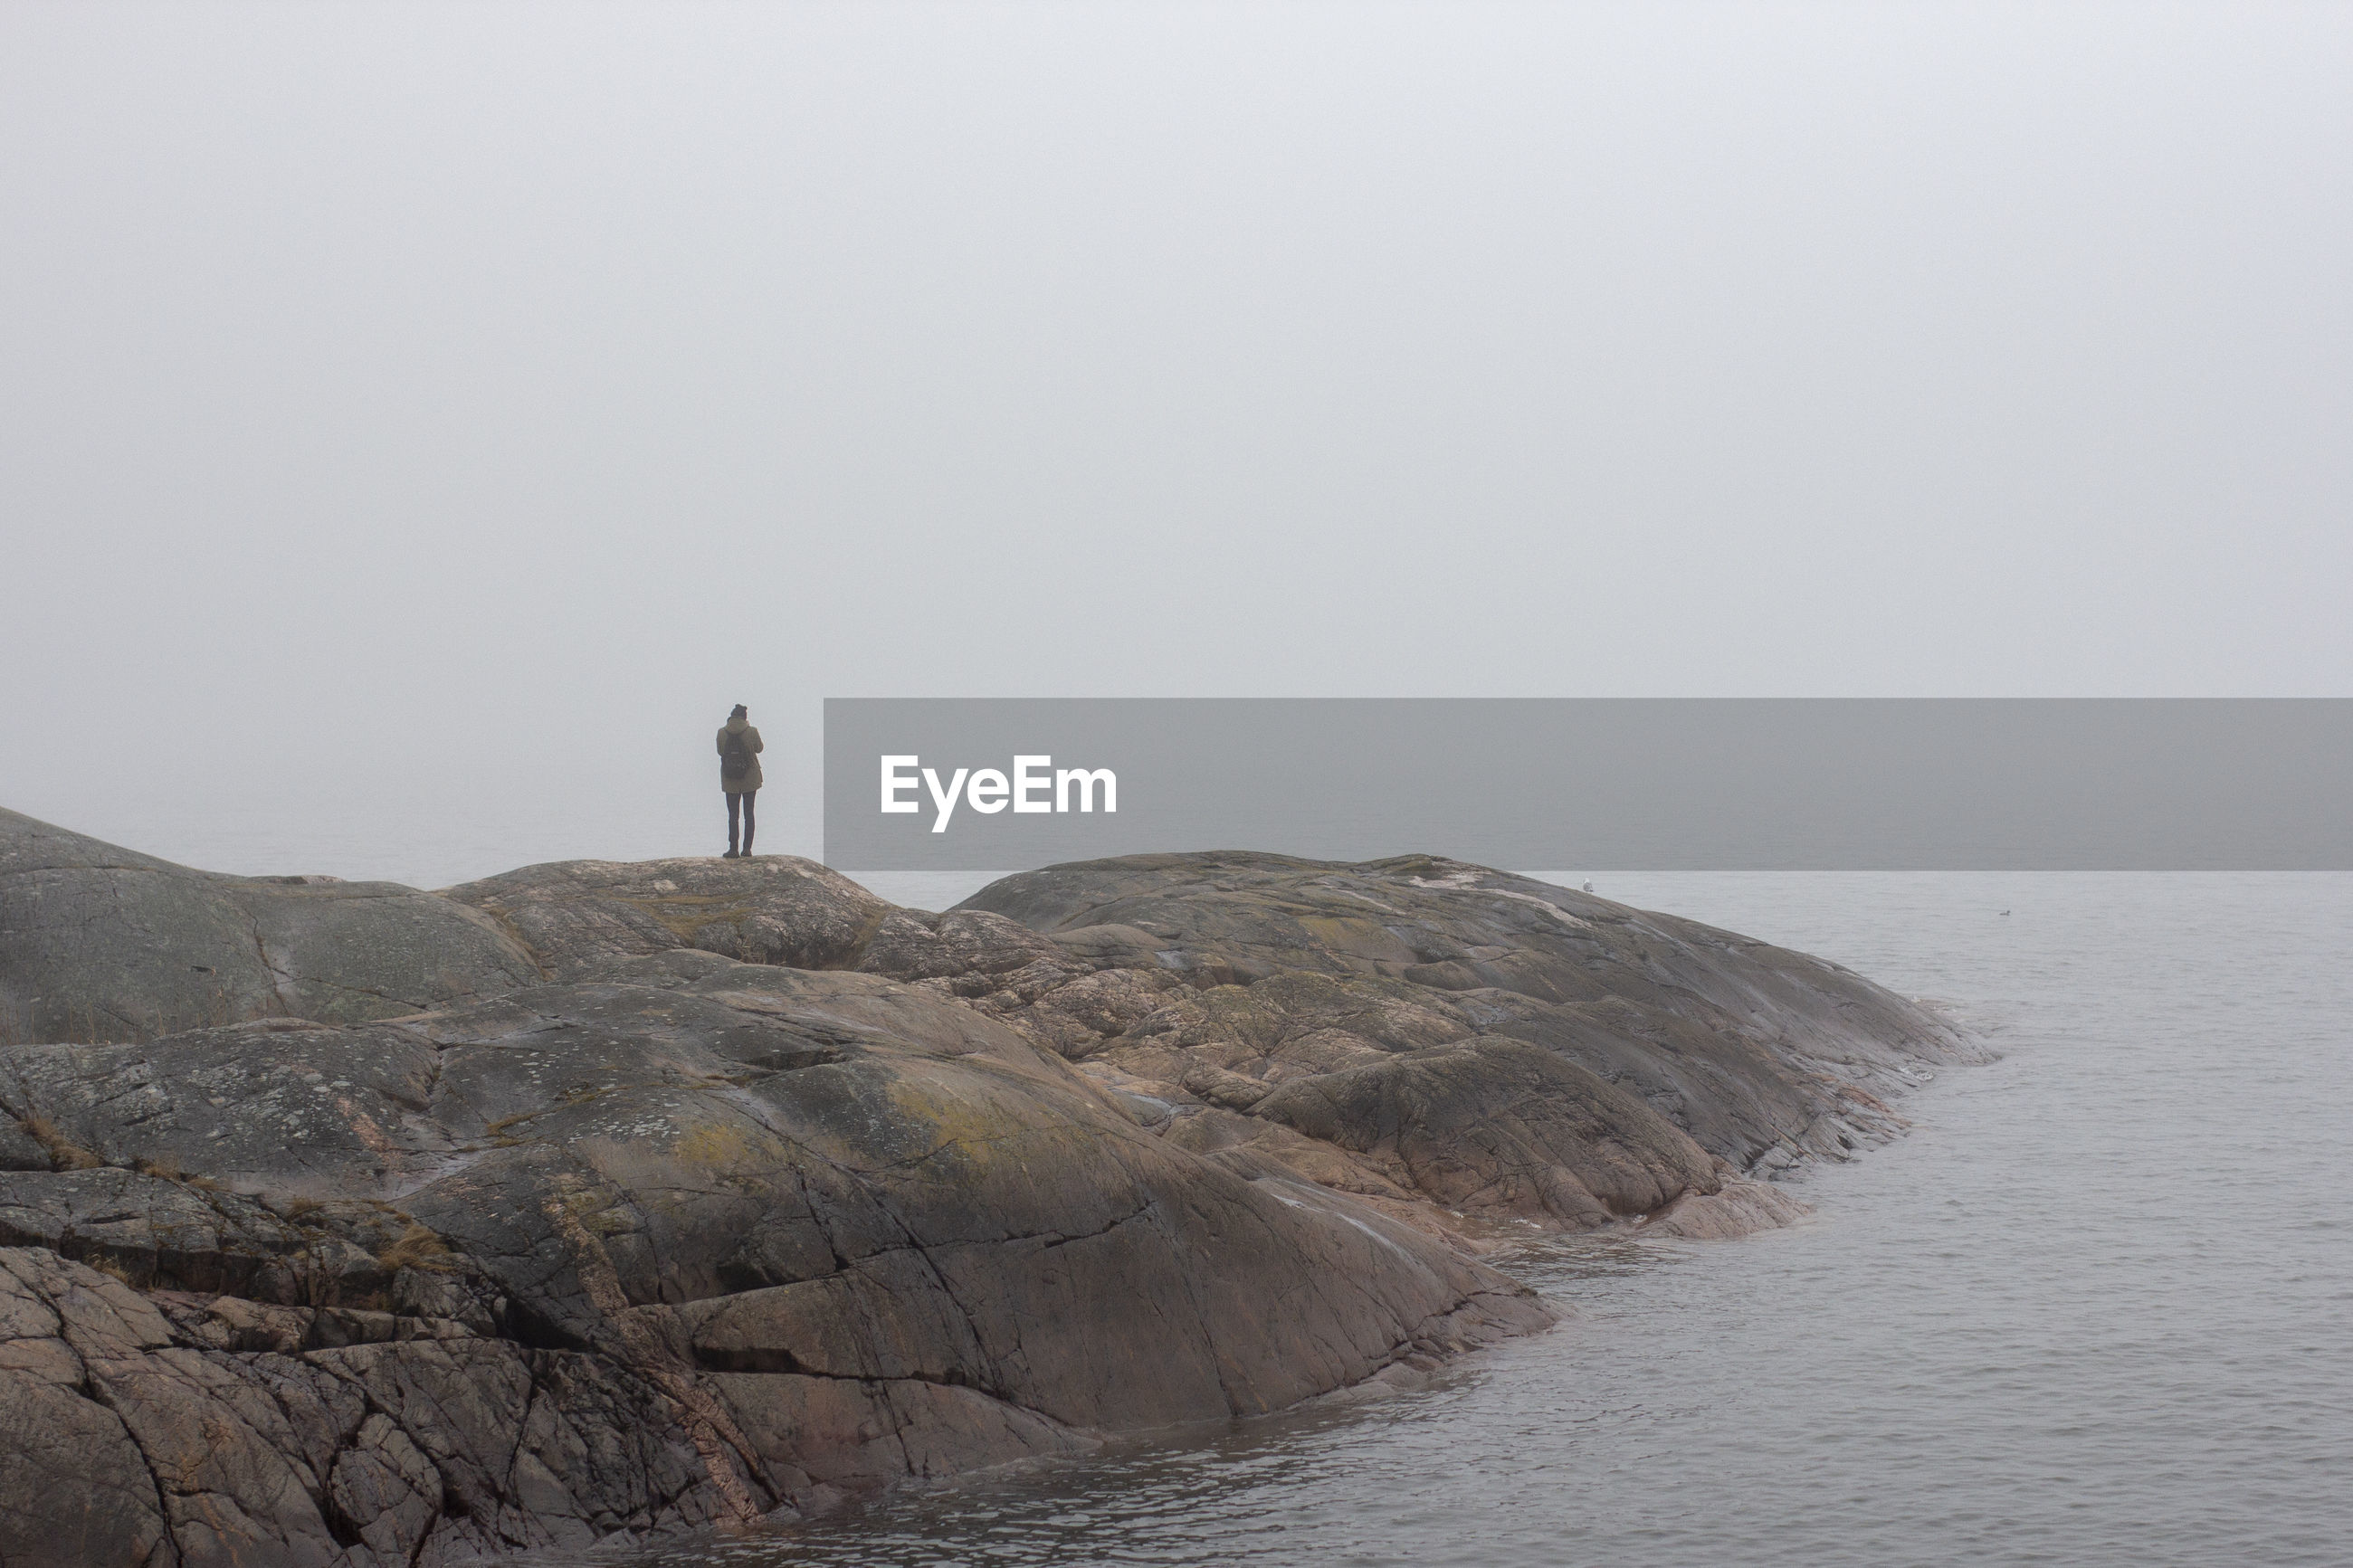 MAN STANDING ON ROCK BY SEA AGAINST SKY DURING FOGGY WEATHER